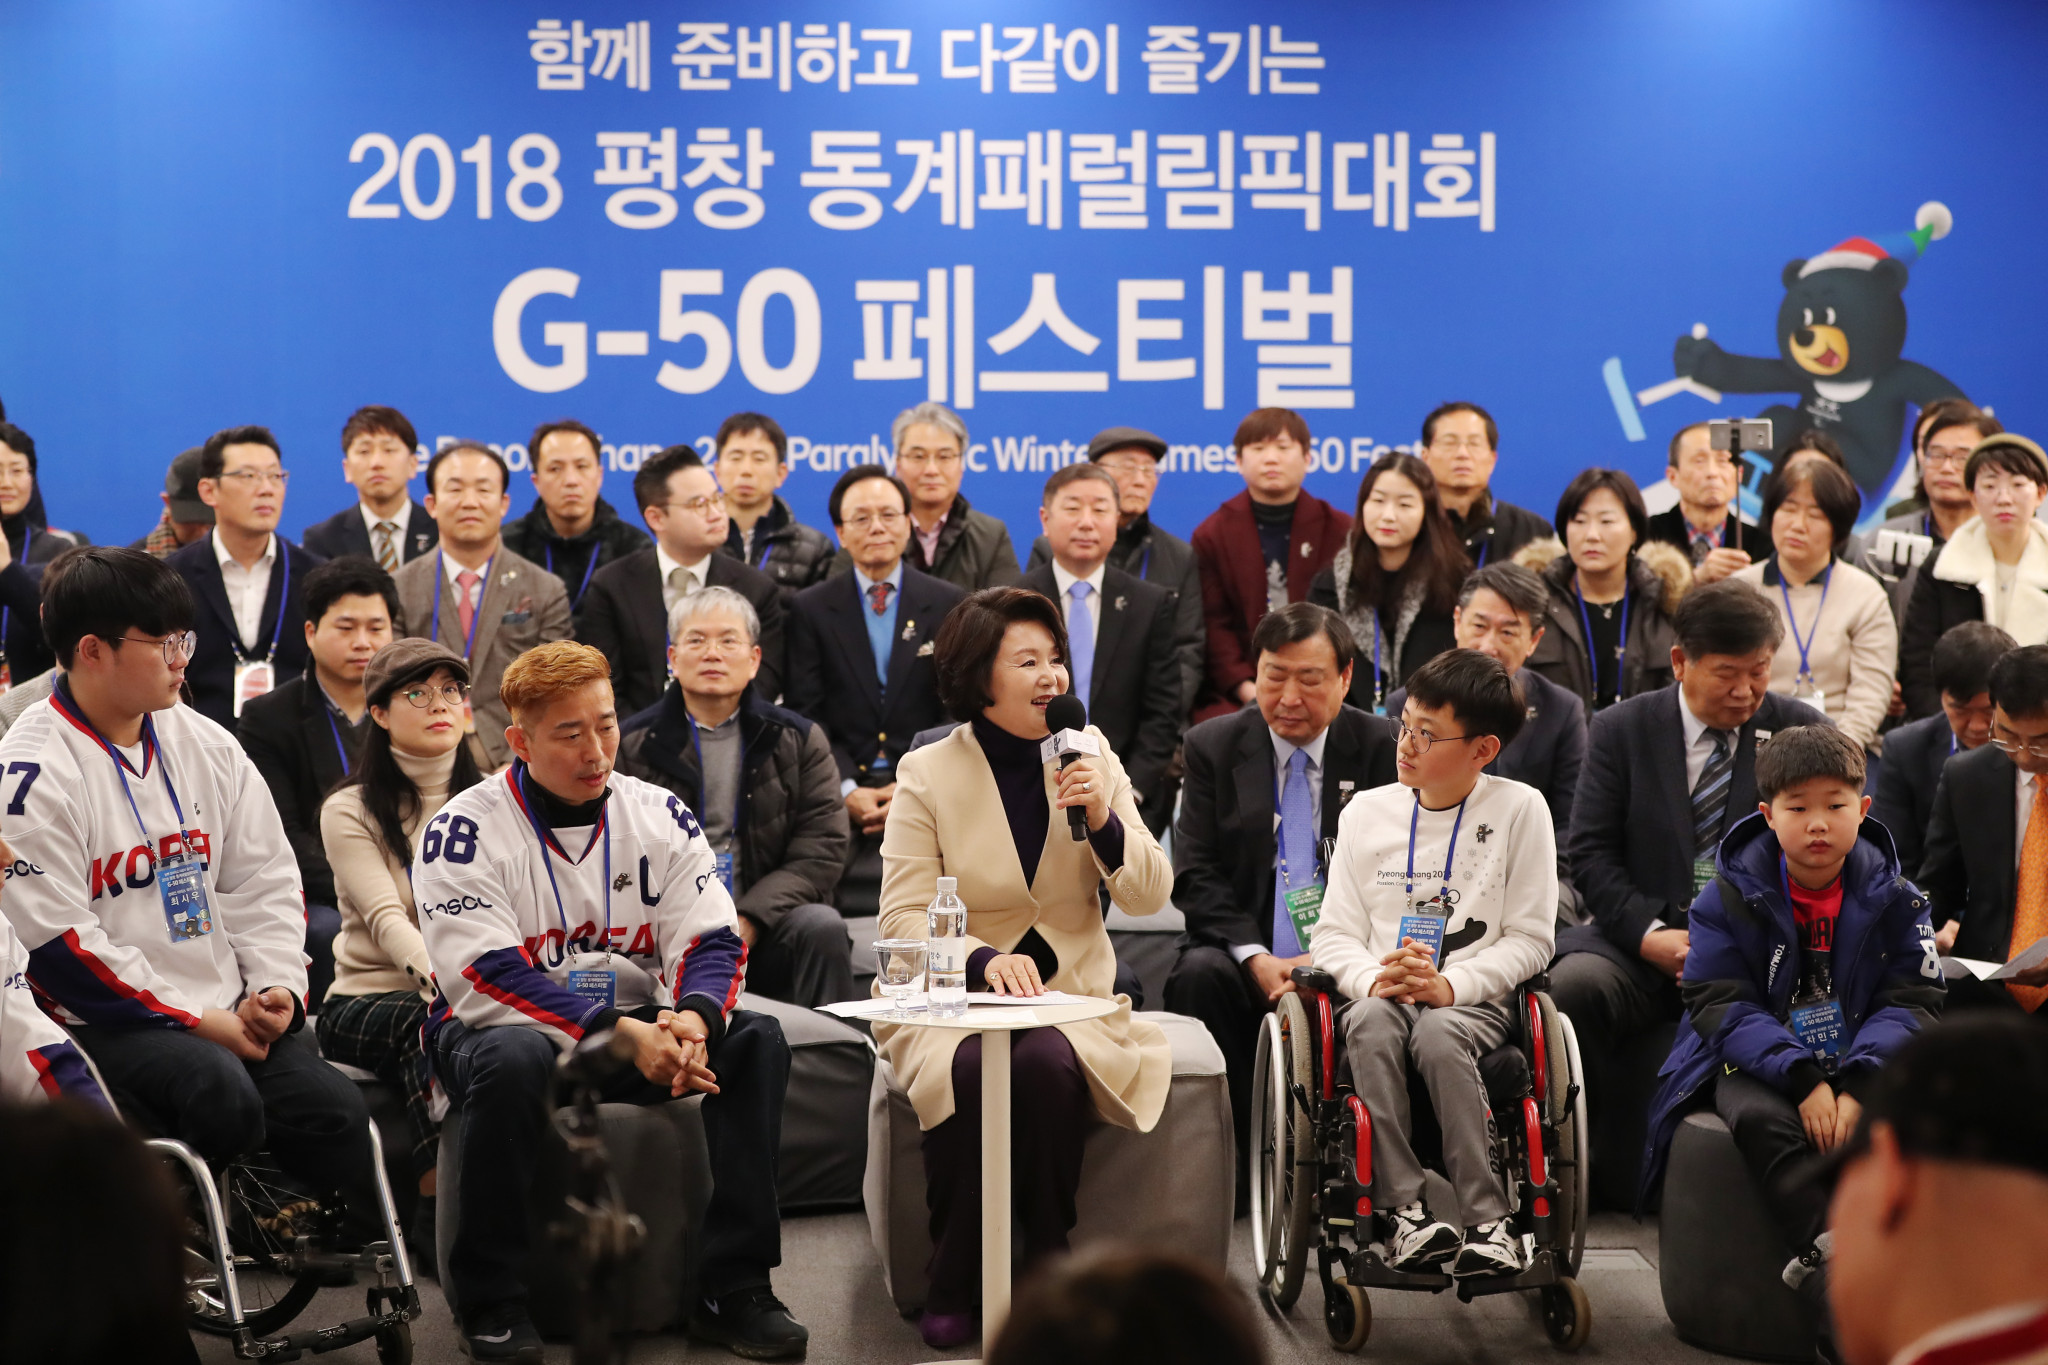 Pyeongchang 2018 Paralympics countdown reaches 50 days